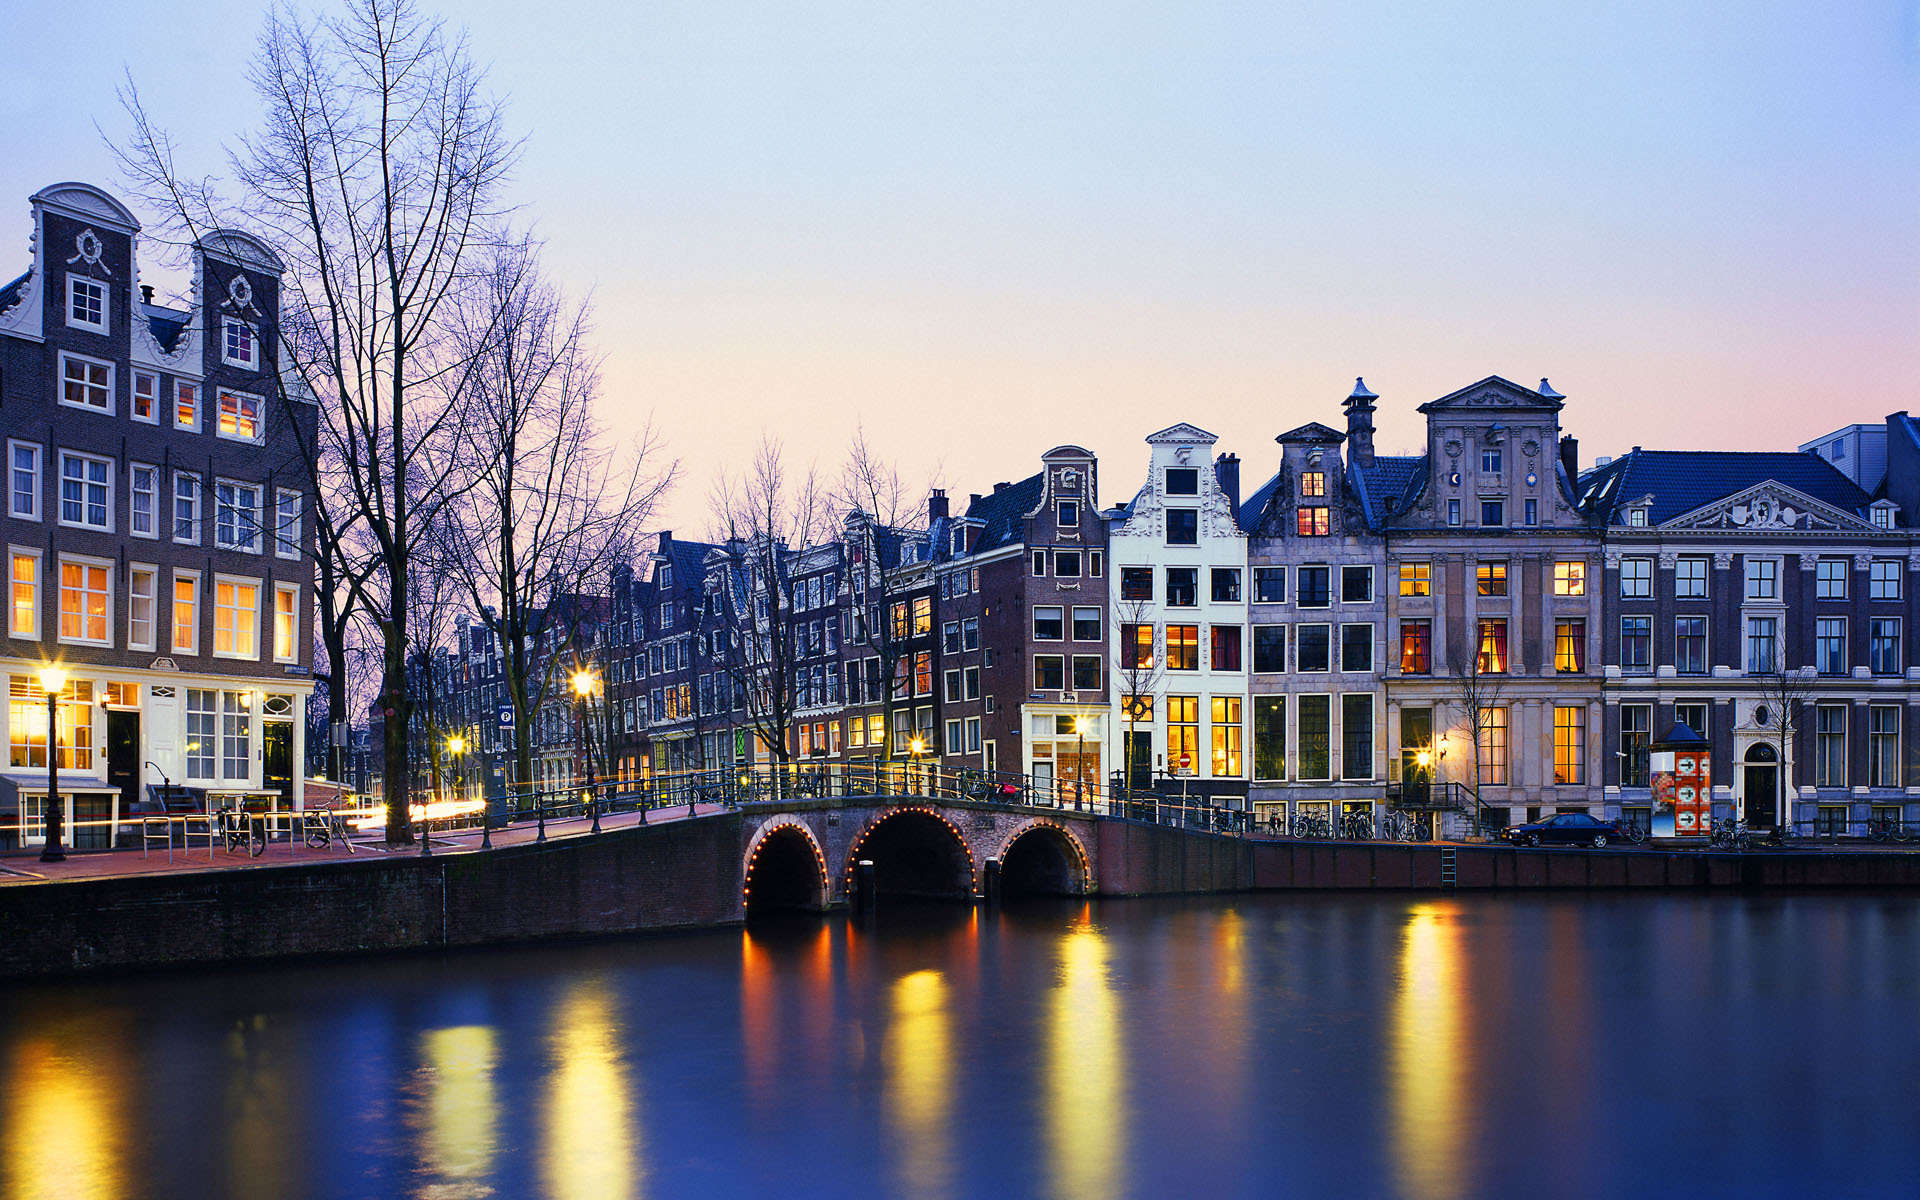 Amsterdam Netherlands  city photos gallery : Amsterdam 400 years of canals